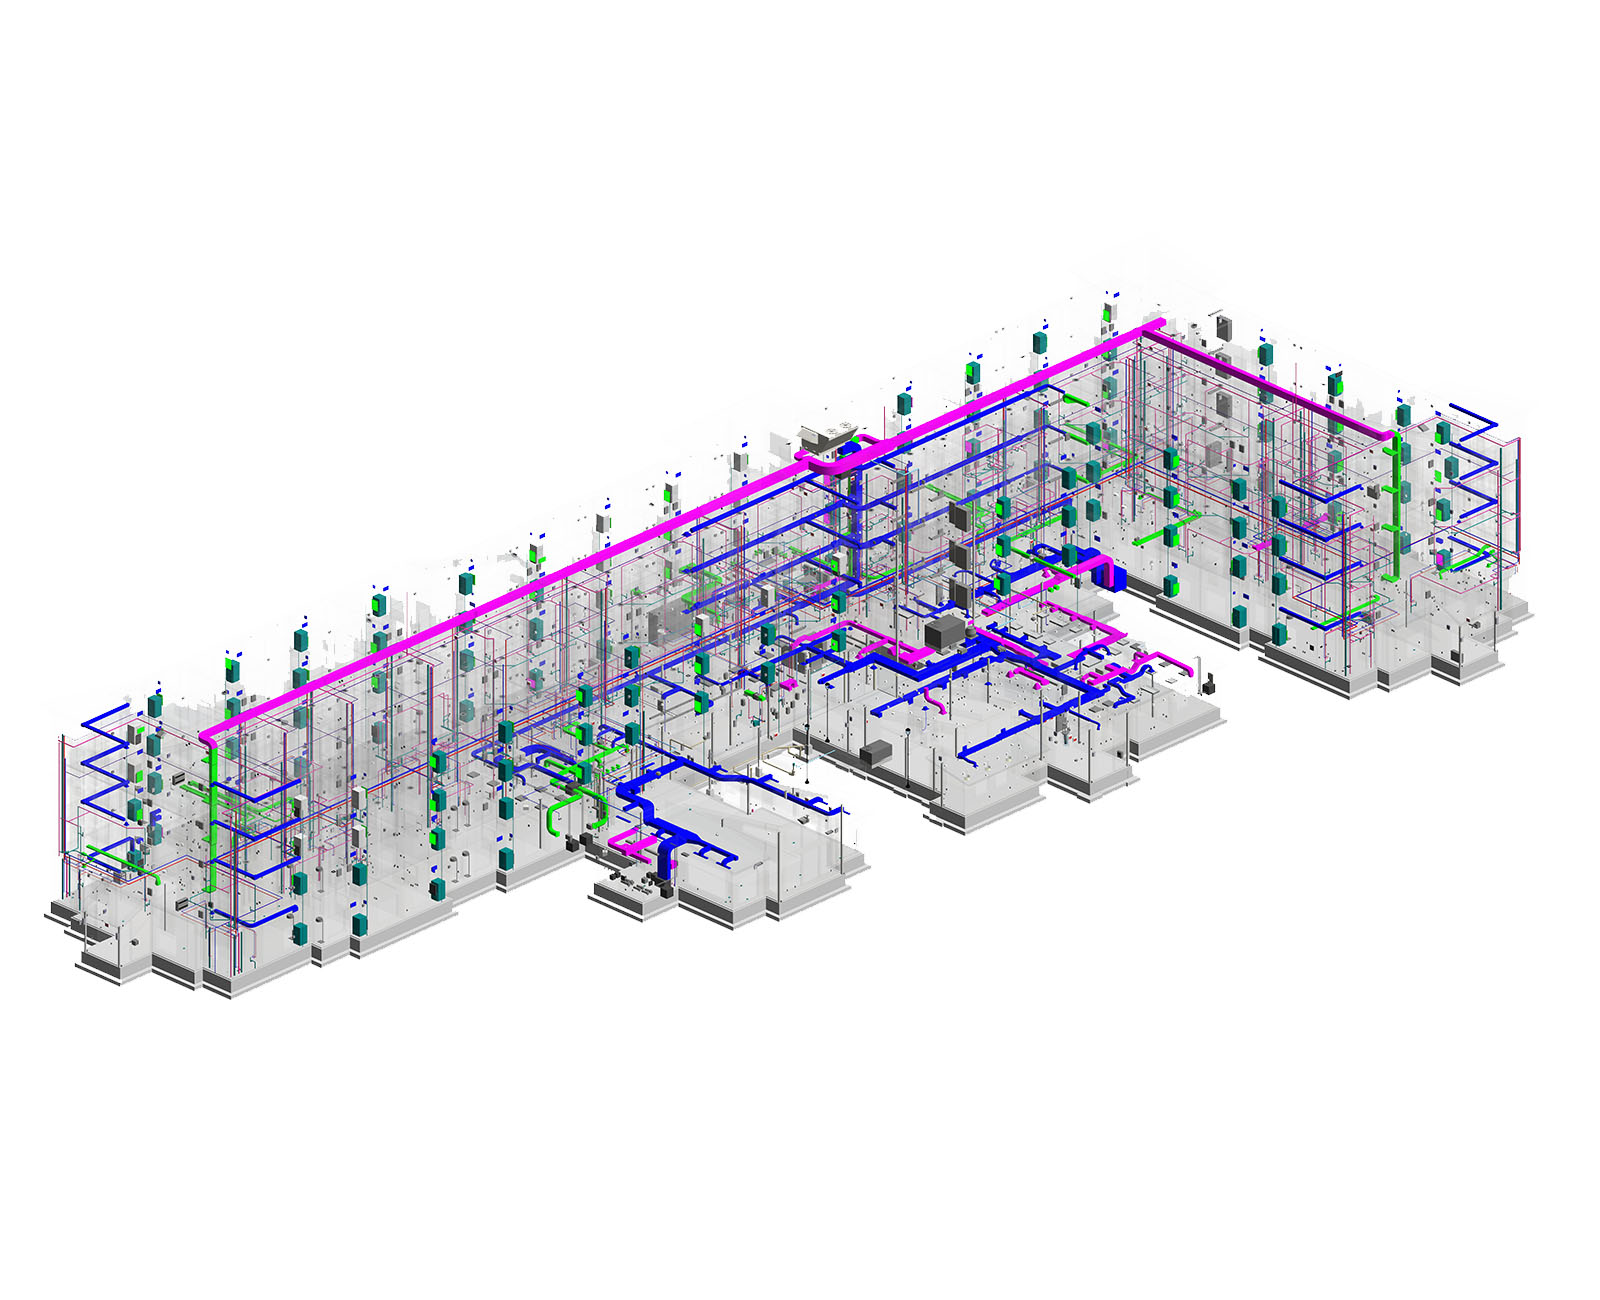 Image of BIM MEP modeling of hotel- Residence Inn- Revit MEP drafting services